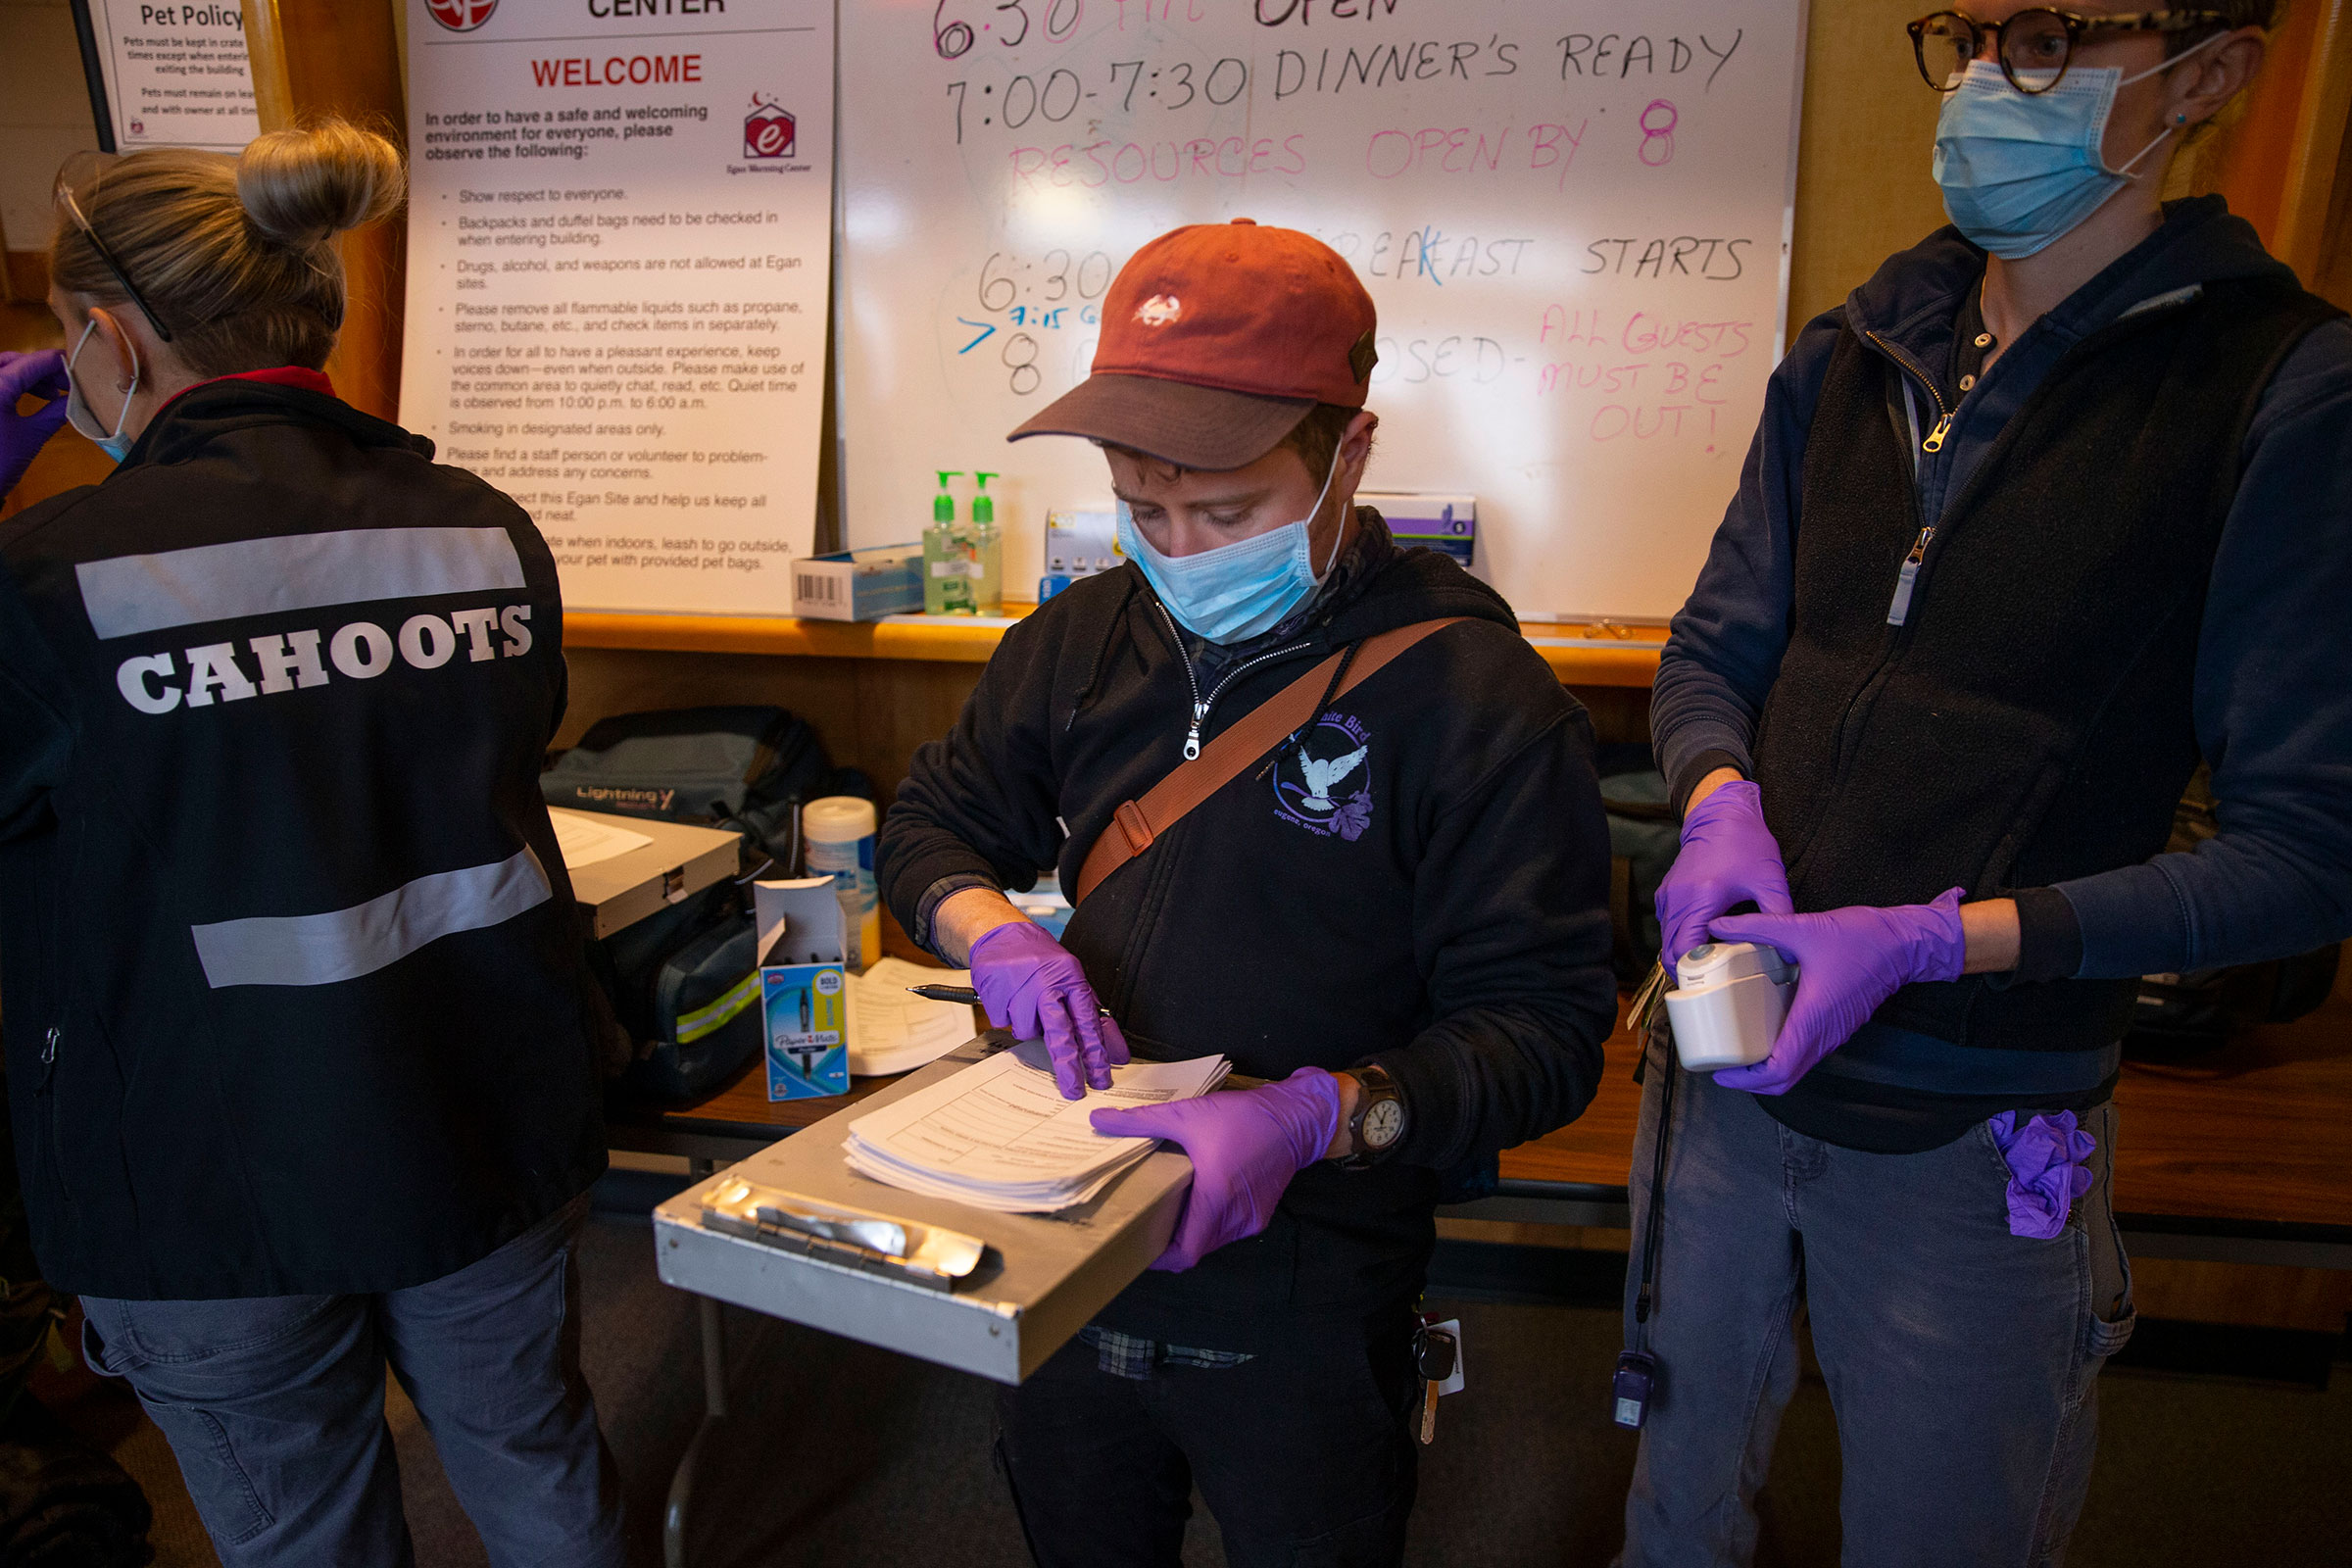 Ve Gulbrandsen, center, an EMT with CAHOOTS, joins a team from White Bird in screening guests for health concerns at the Egan Warming Center in Springfield, Ore. on March 16, 2020.